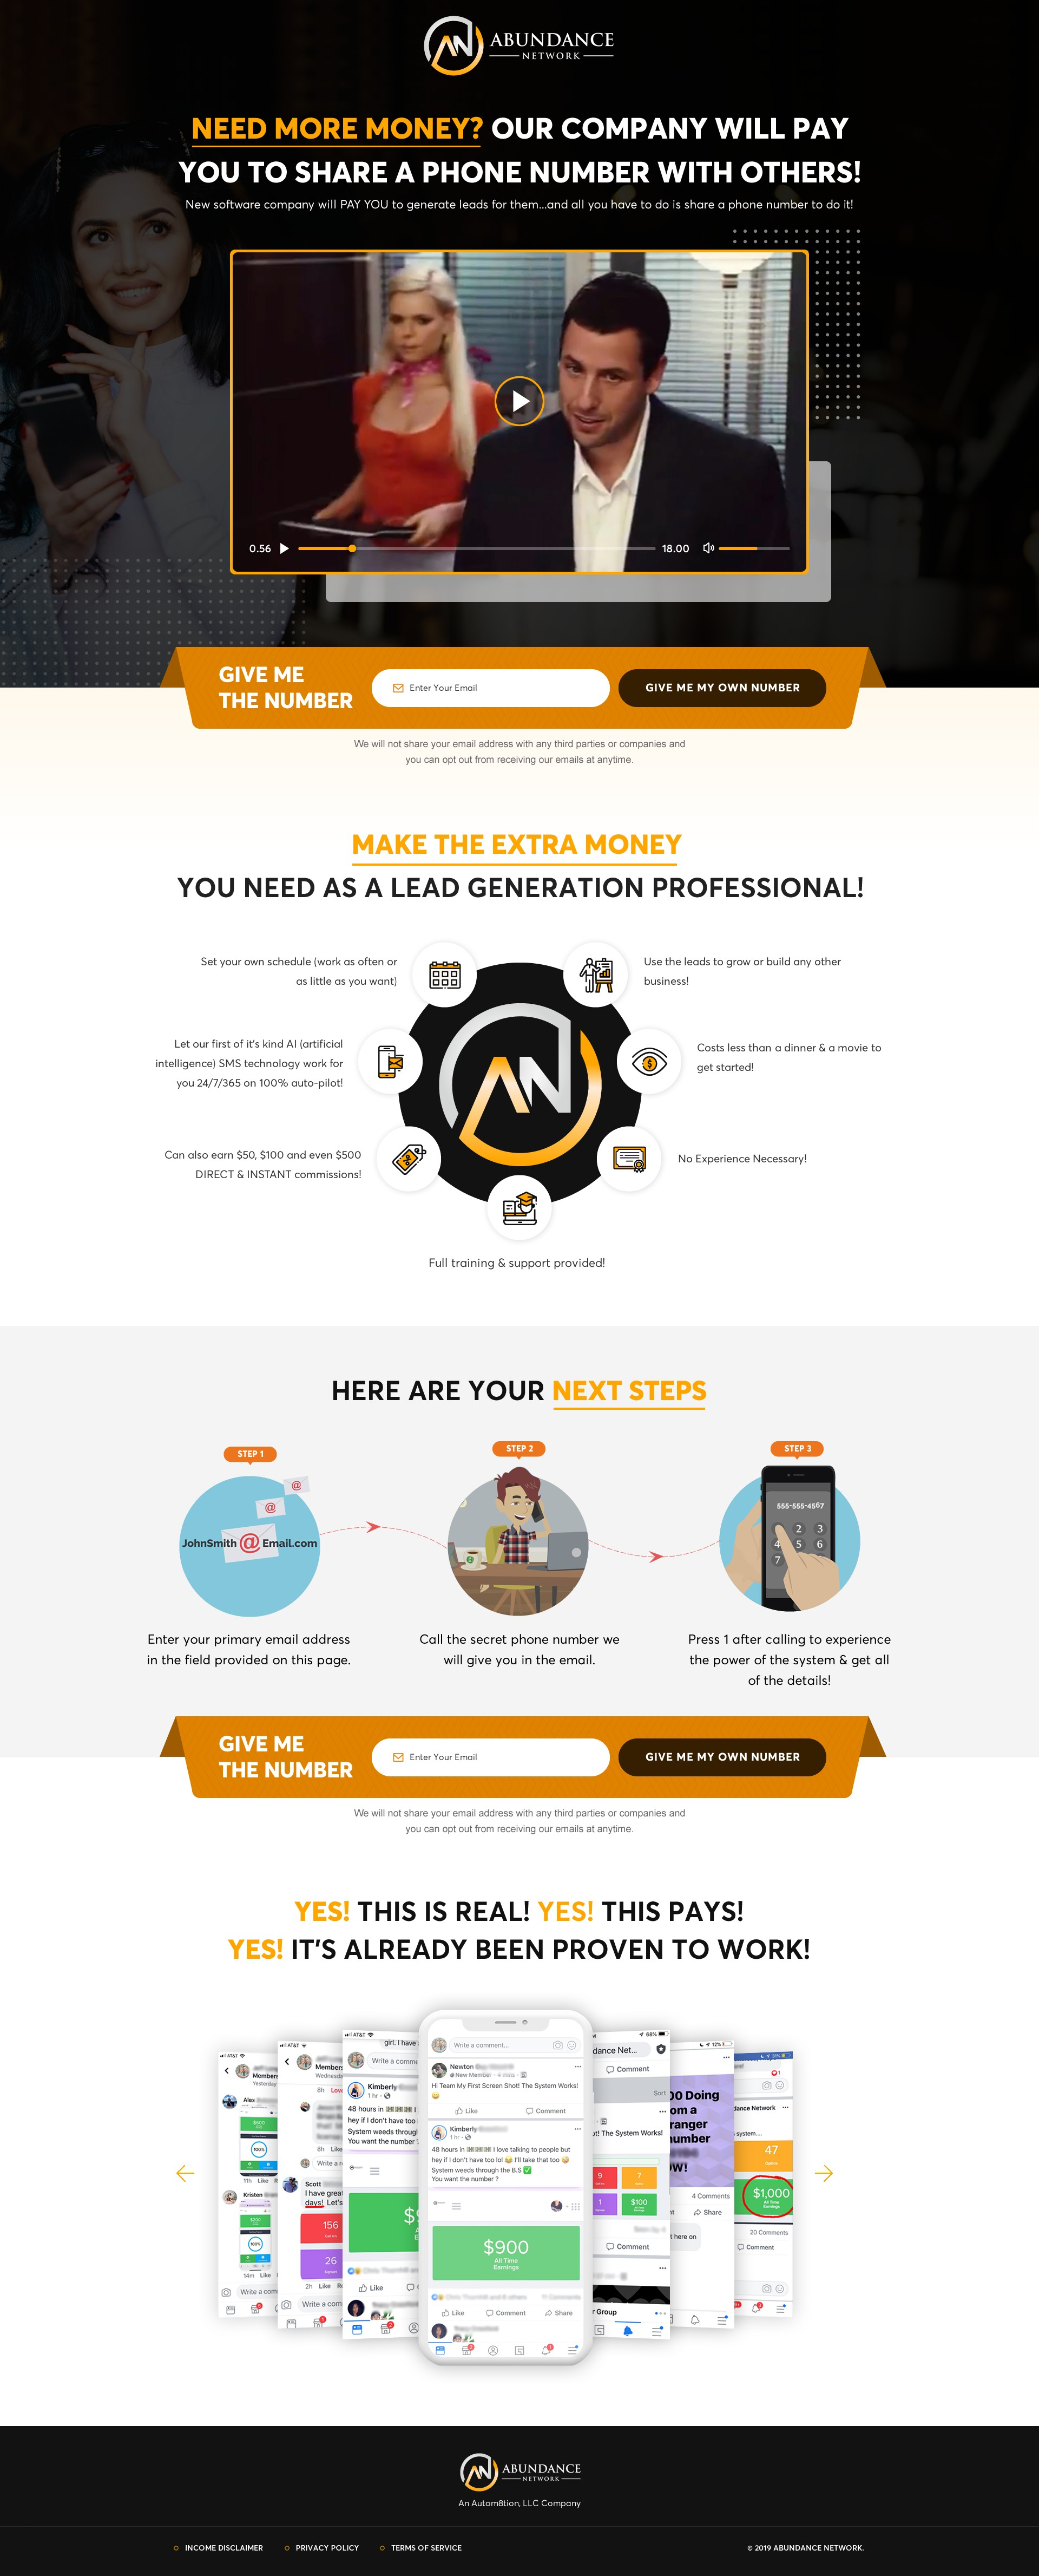 Design a kick ass landing page for new software company